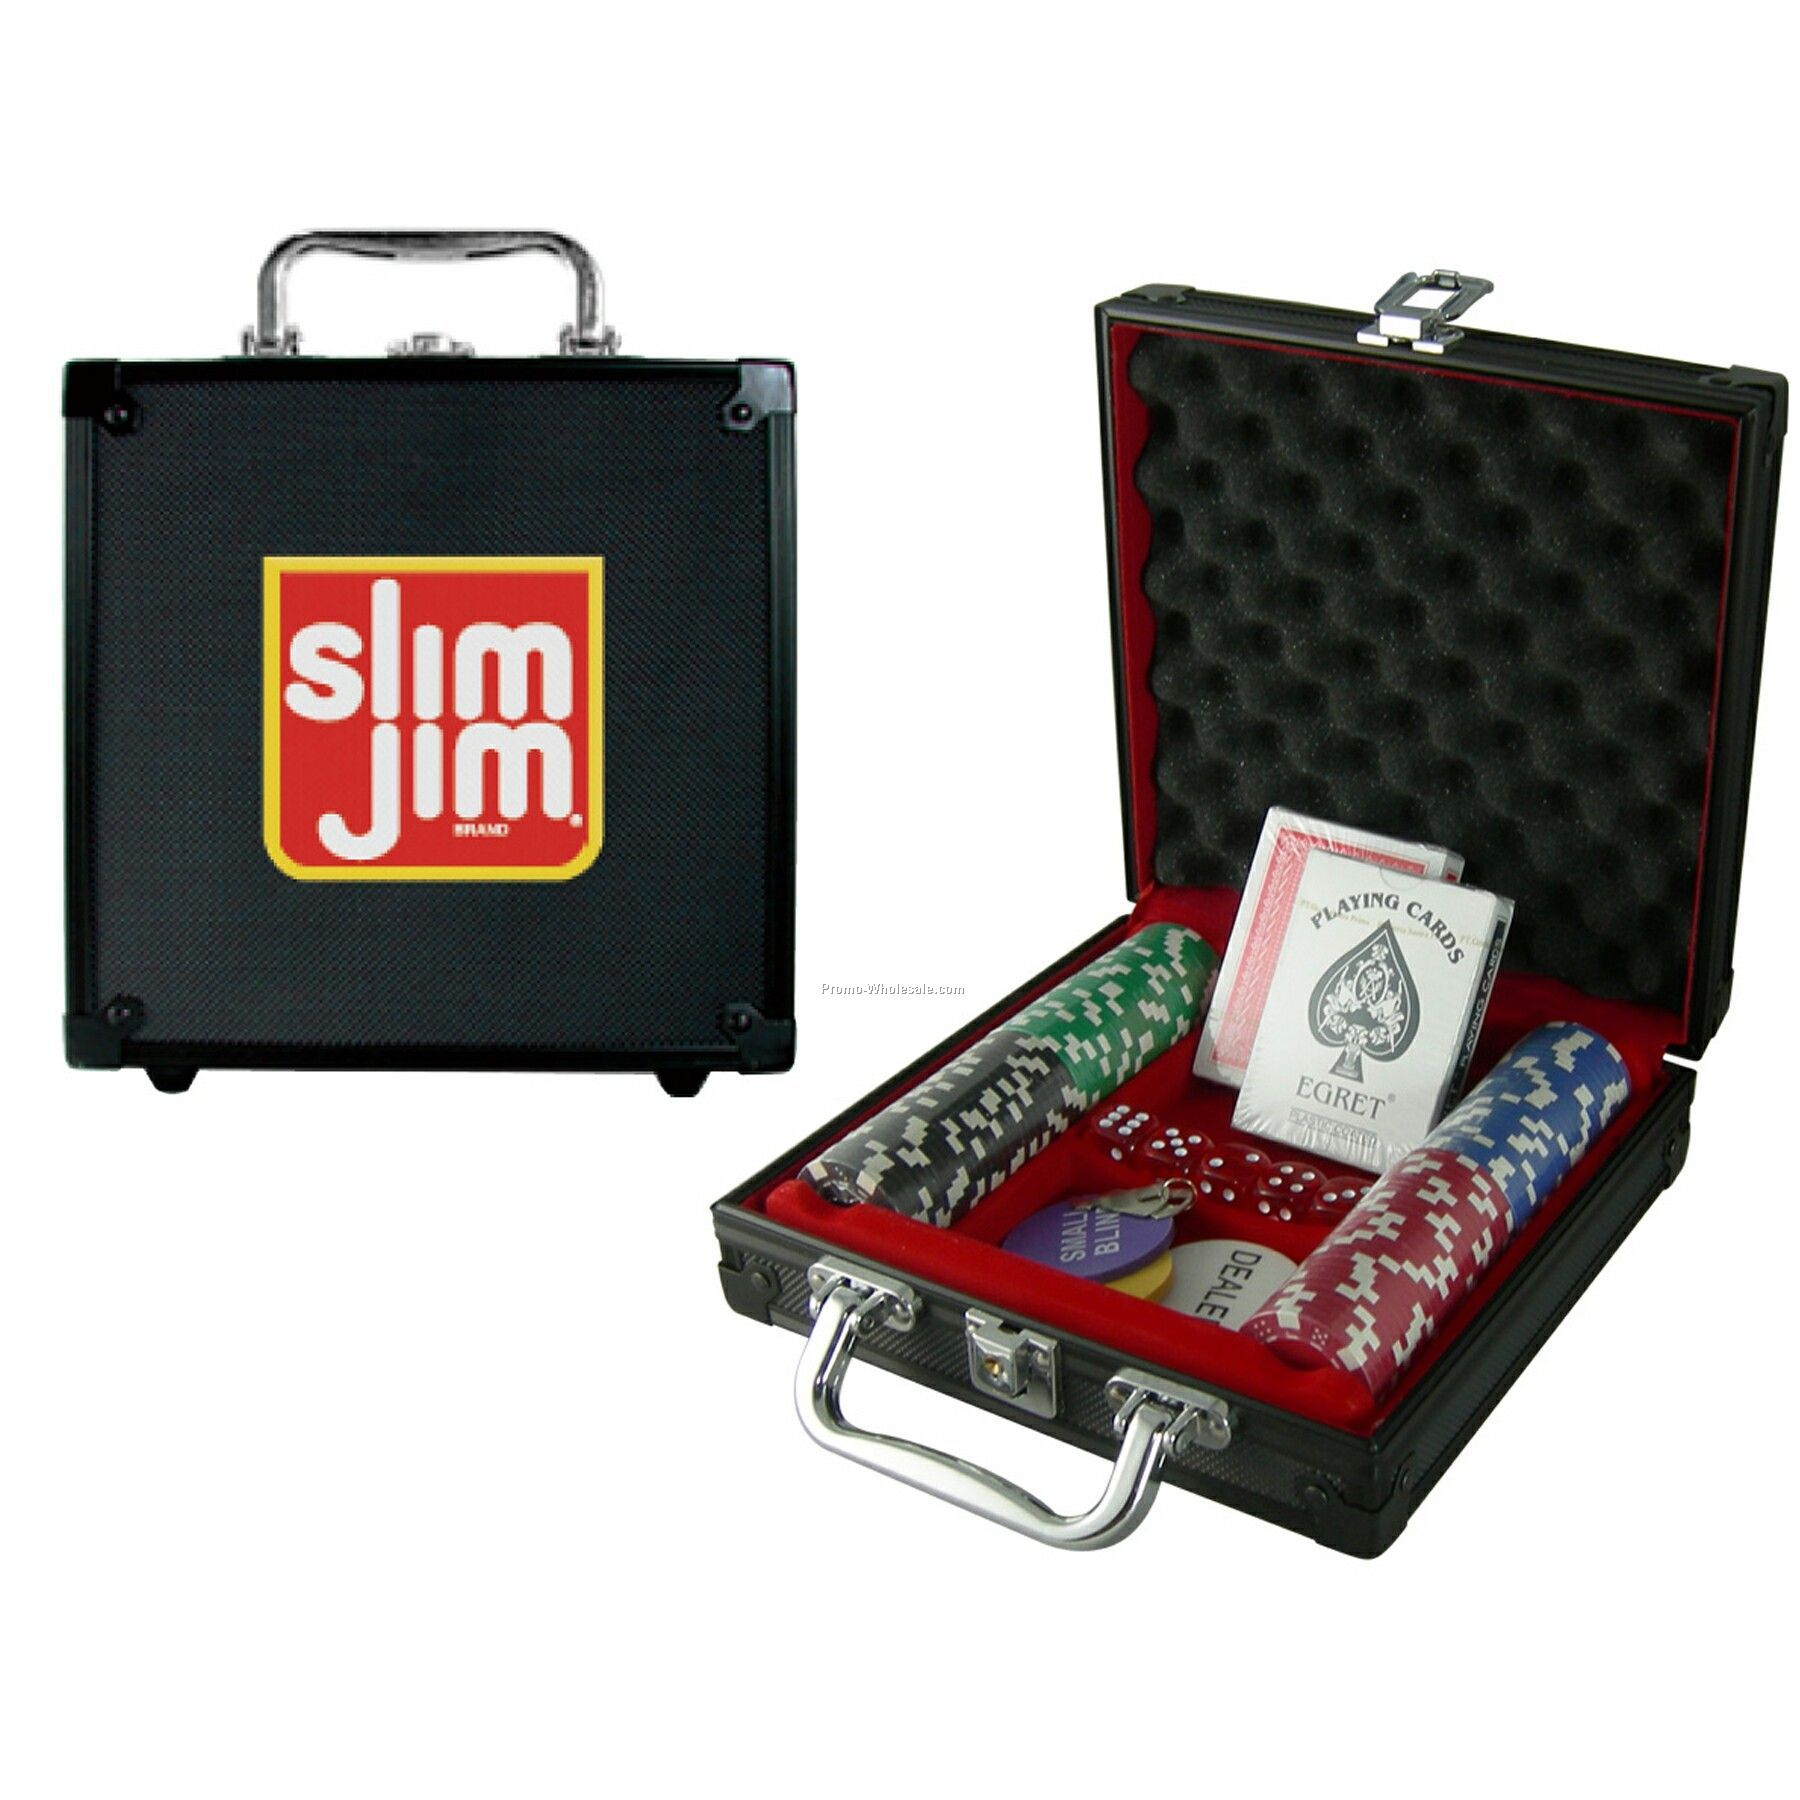 100 Piece Poker Chip Set With Black Case - 1 Side Chip Imprint